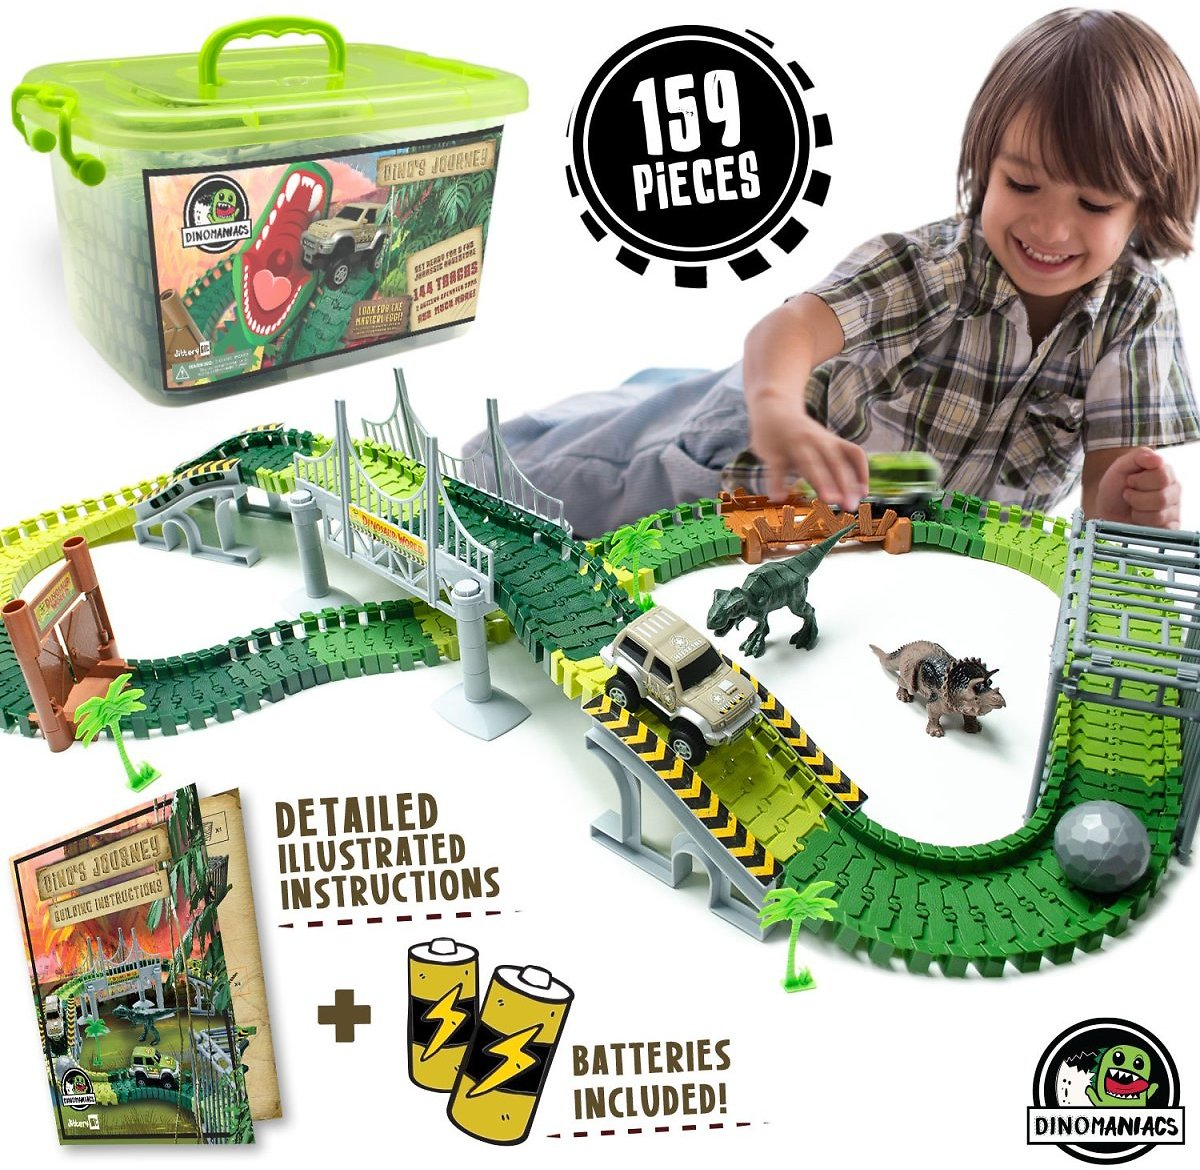 JITTERYGIT Dinosaur Train Track Toy | Jurassic Escape World | Build An Adventure Park | Fun Race Car Set | Awesome Gift for Kids